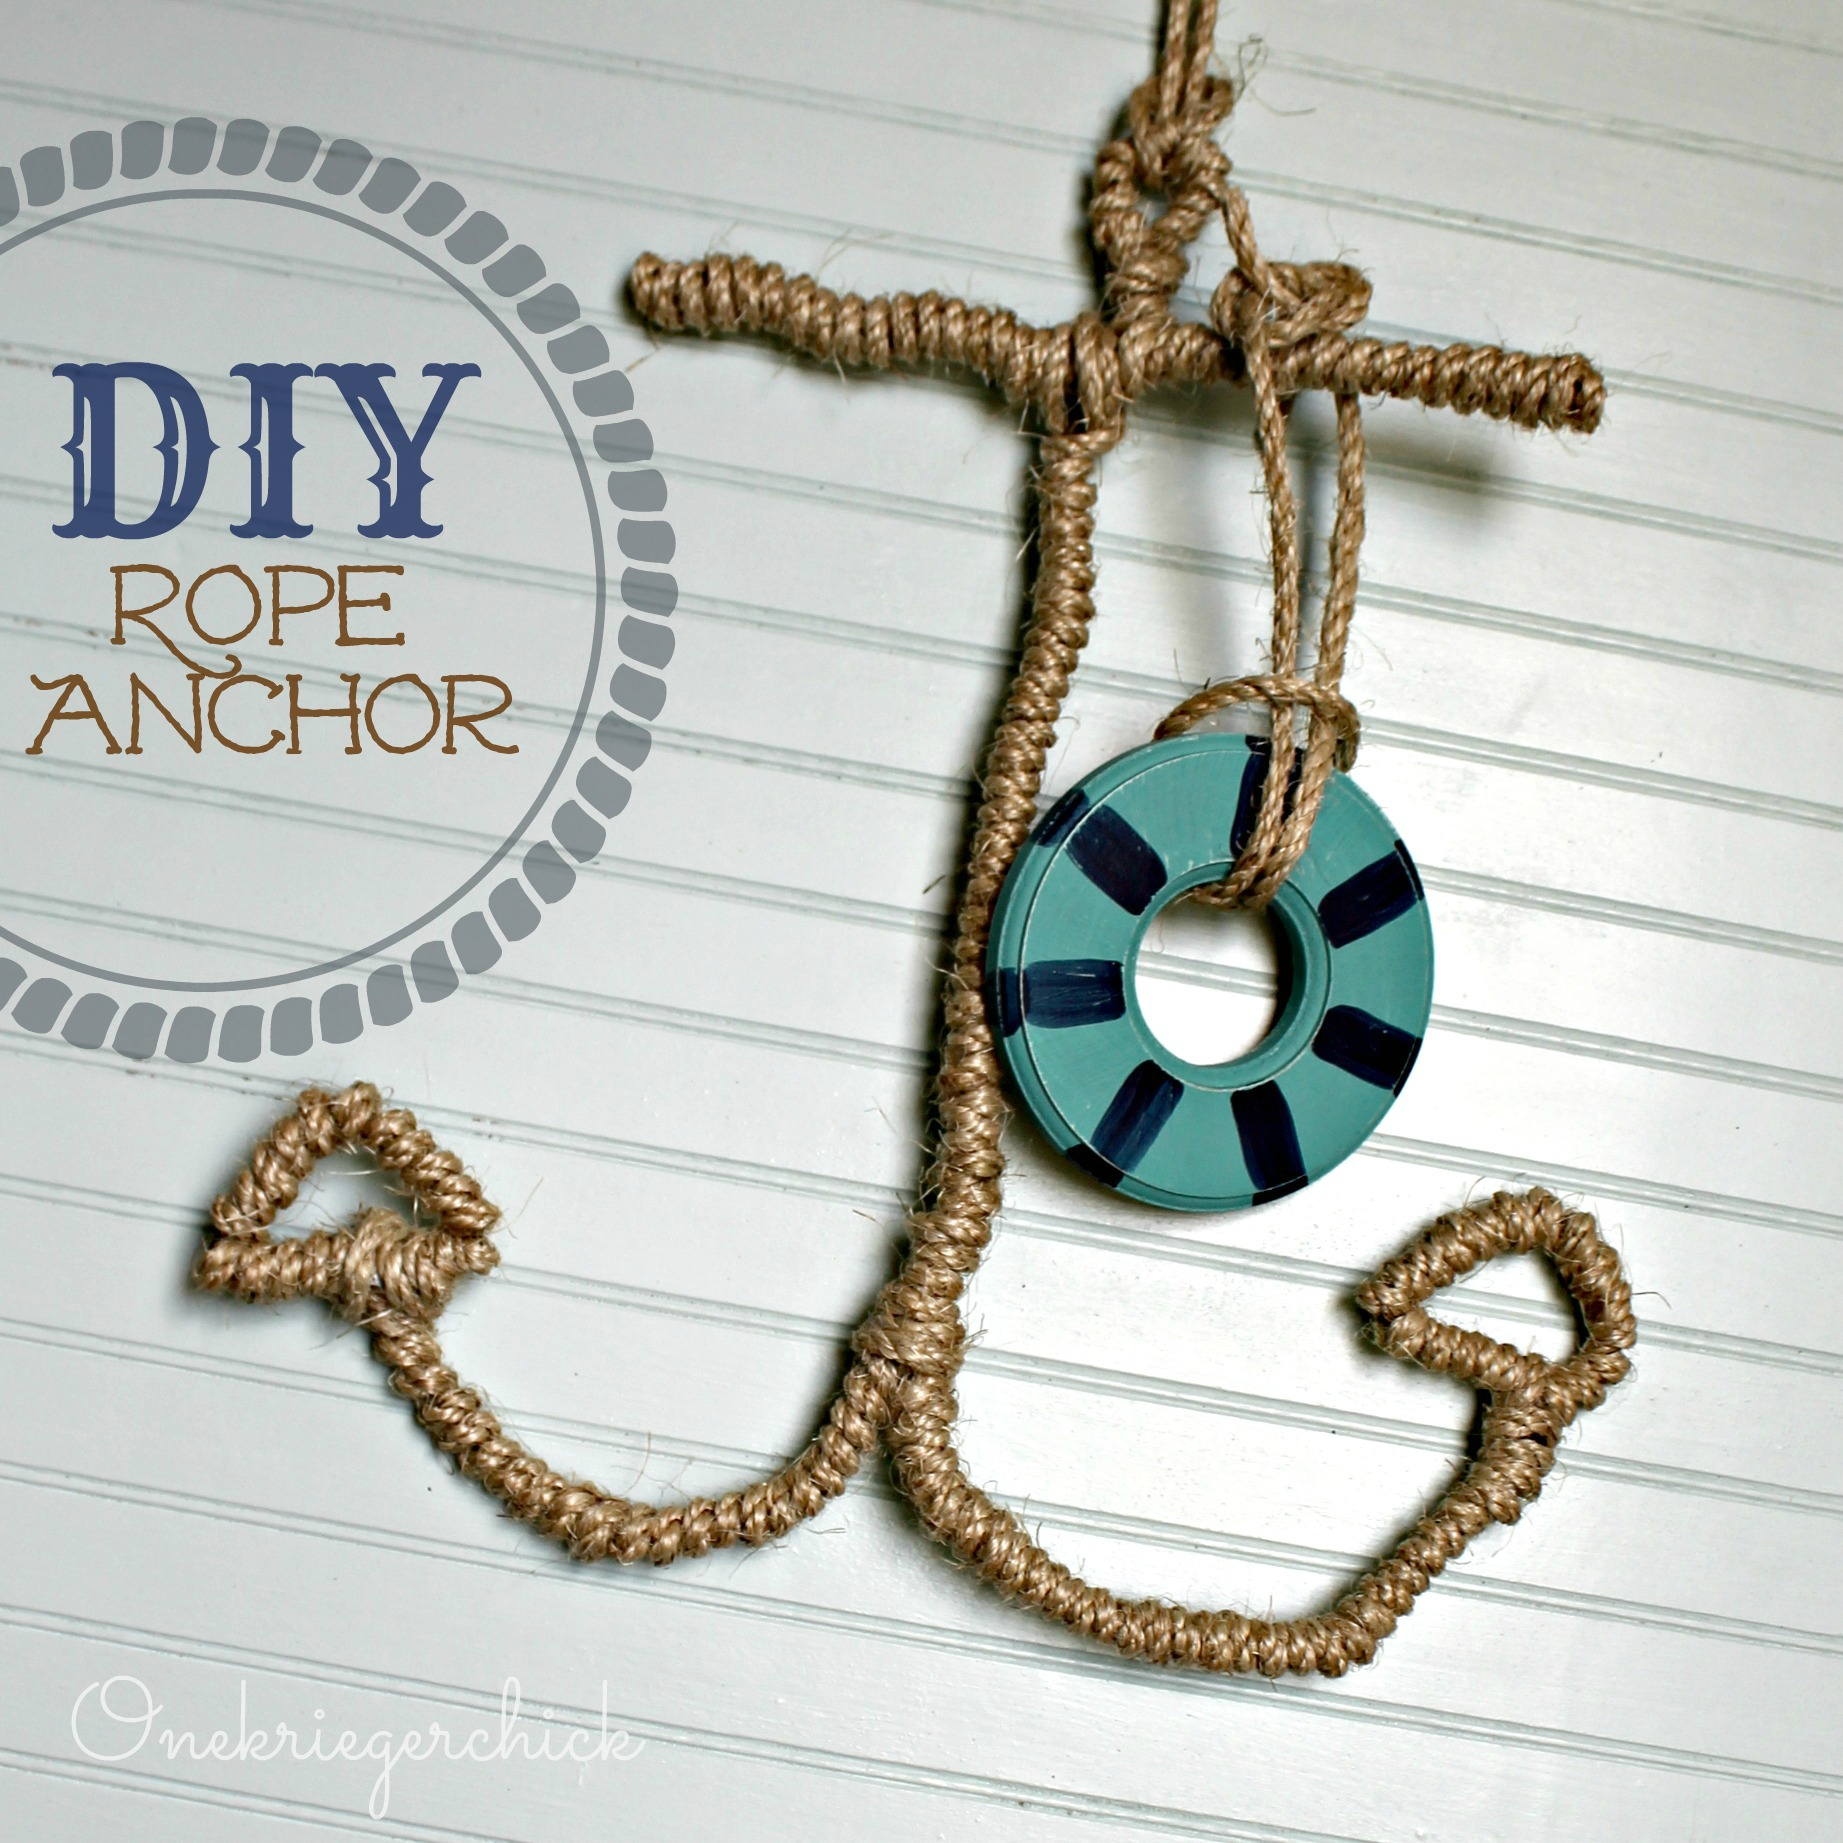 Diy rope anchor onekriegerchick for Anchor decoration